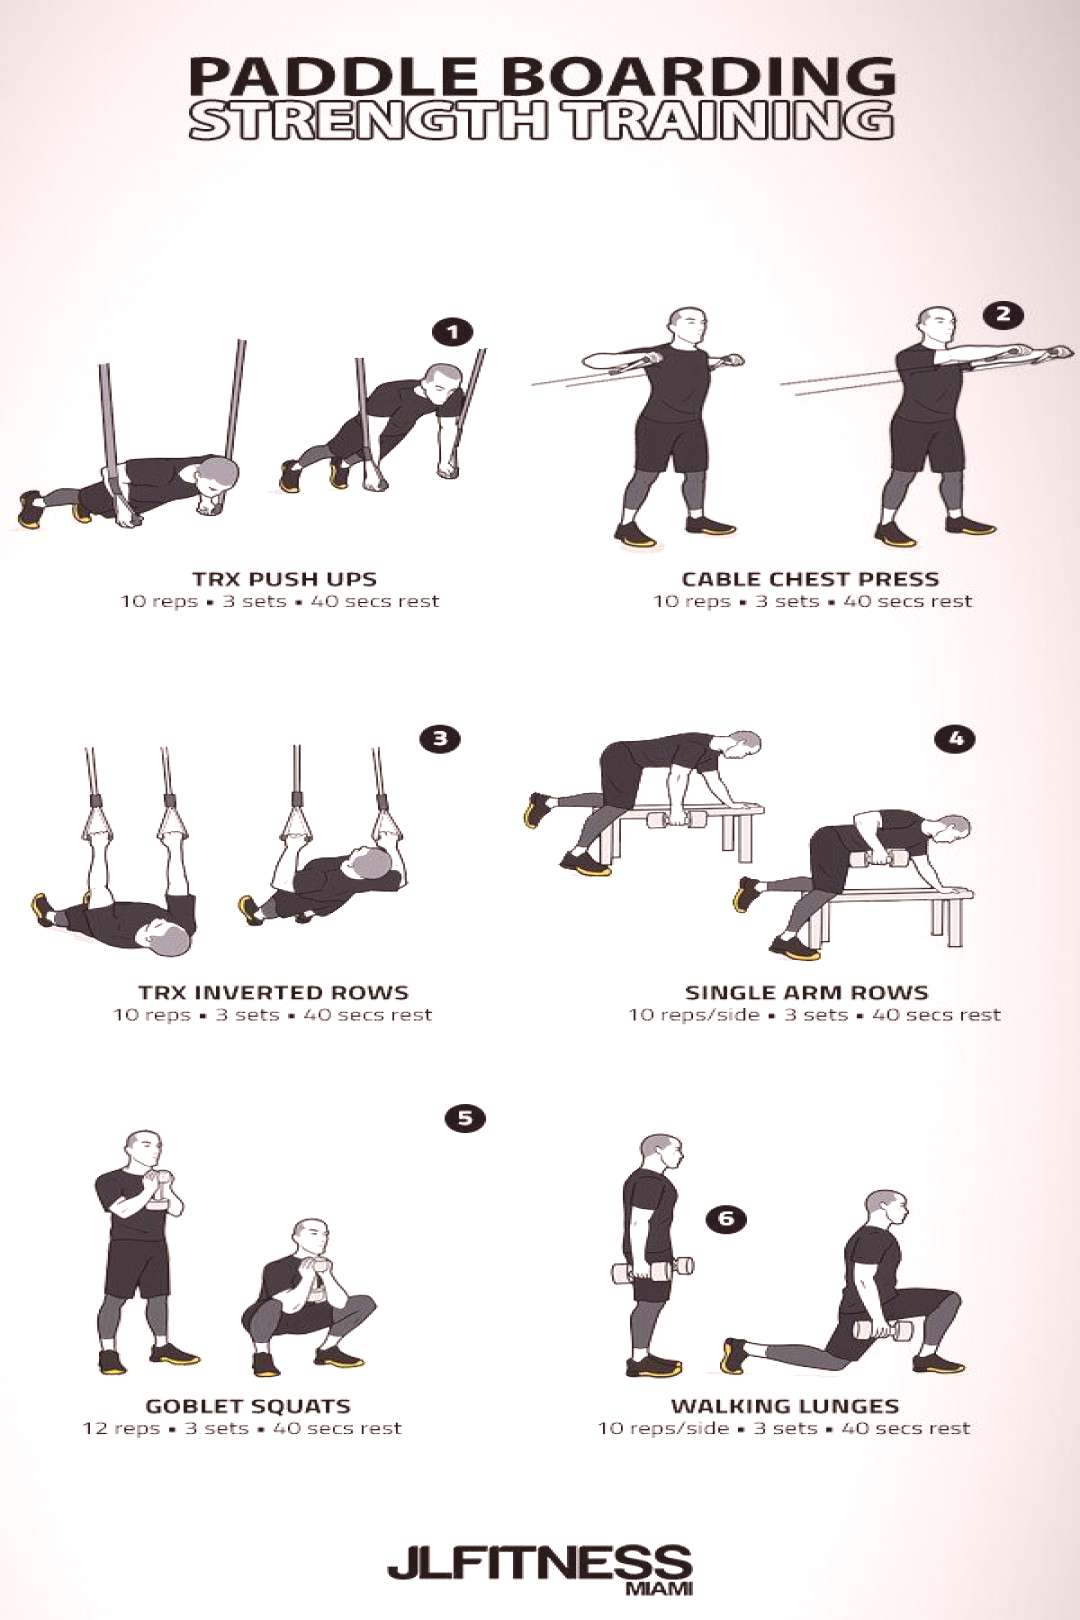 ?? Special 4 Workouts for Paddle Boarding Enthusiasts | JLFITNESSMIAMI